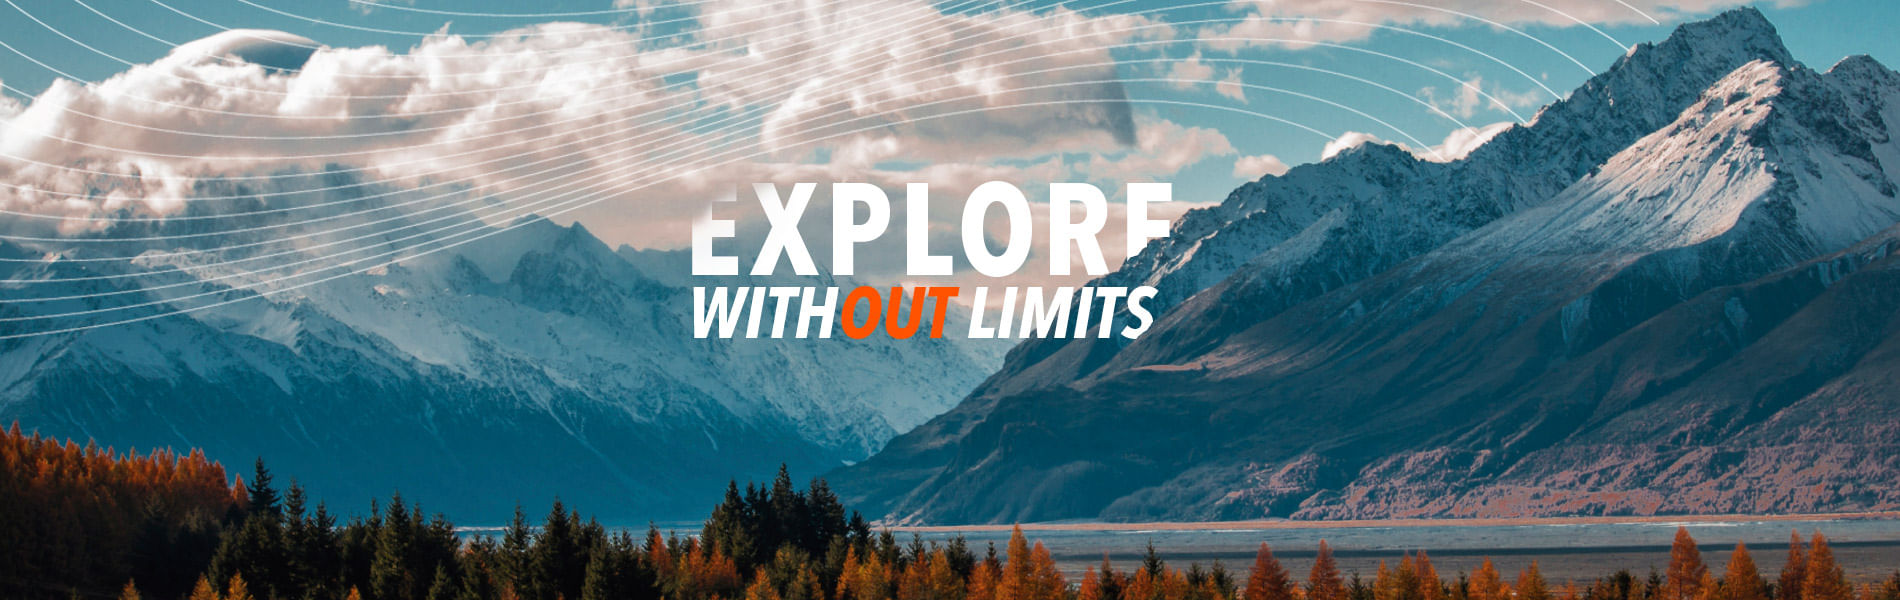 Explore without limits